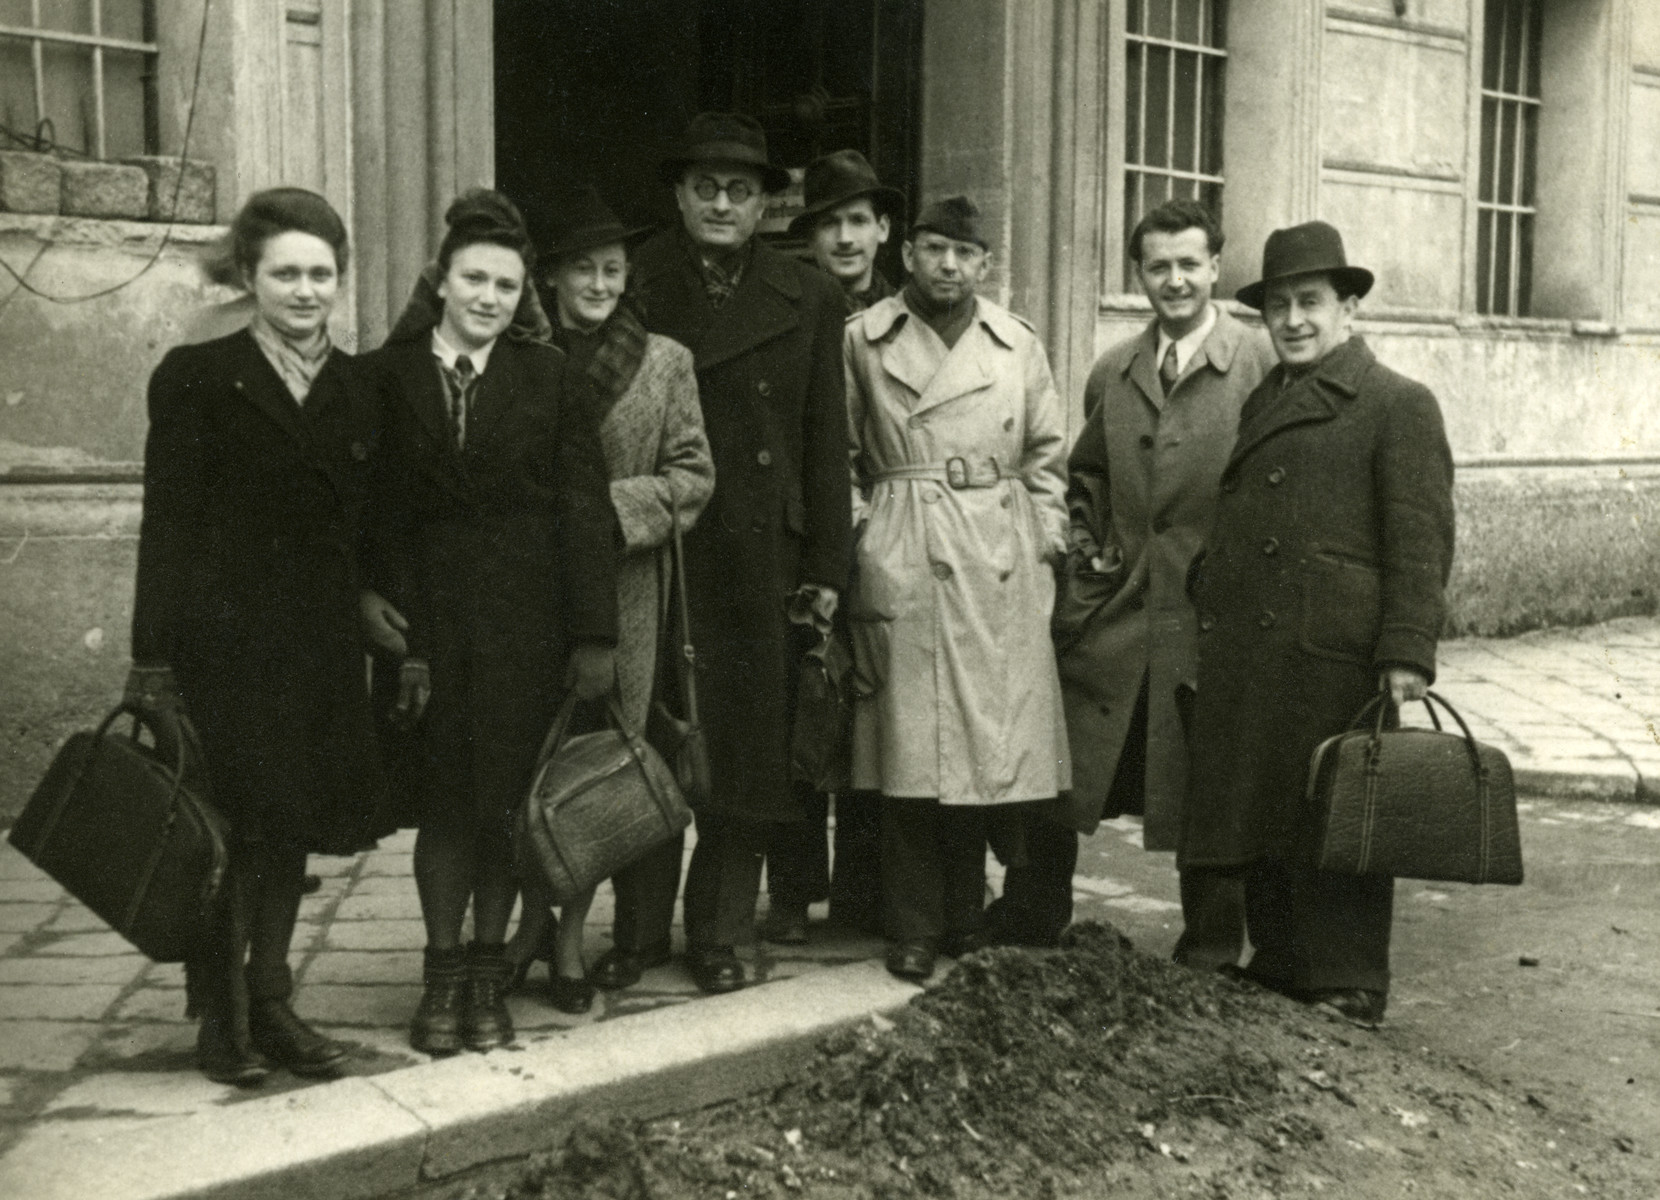 Group portrait of displaced persons and HIAS personnel in Salzburg, Austria.  Esther Wagner is standing second from the left.  Dr. Kenneth Eugene Goodwin, head of the HIAS office is third from the right in a raincoat.